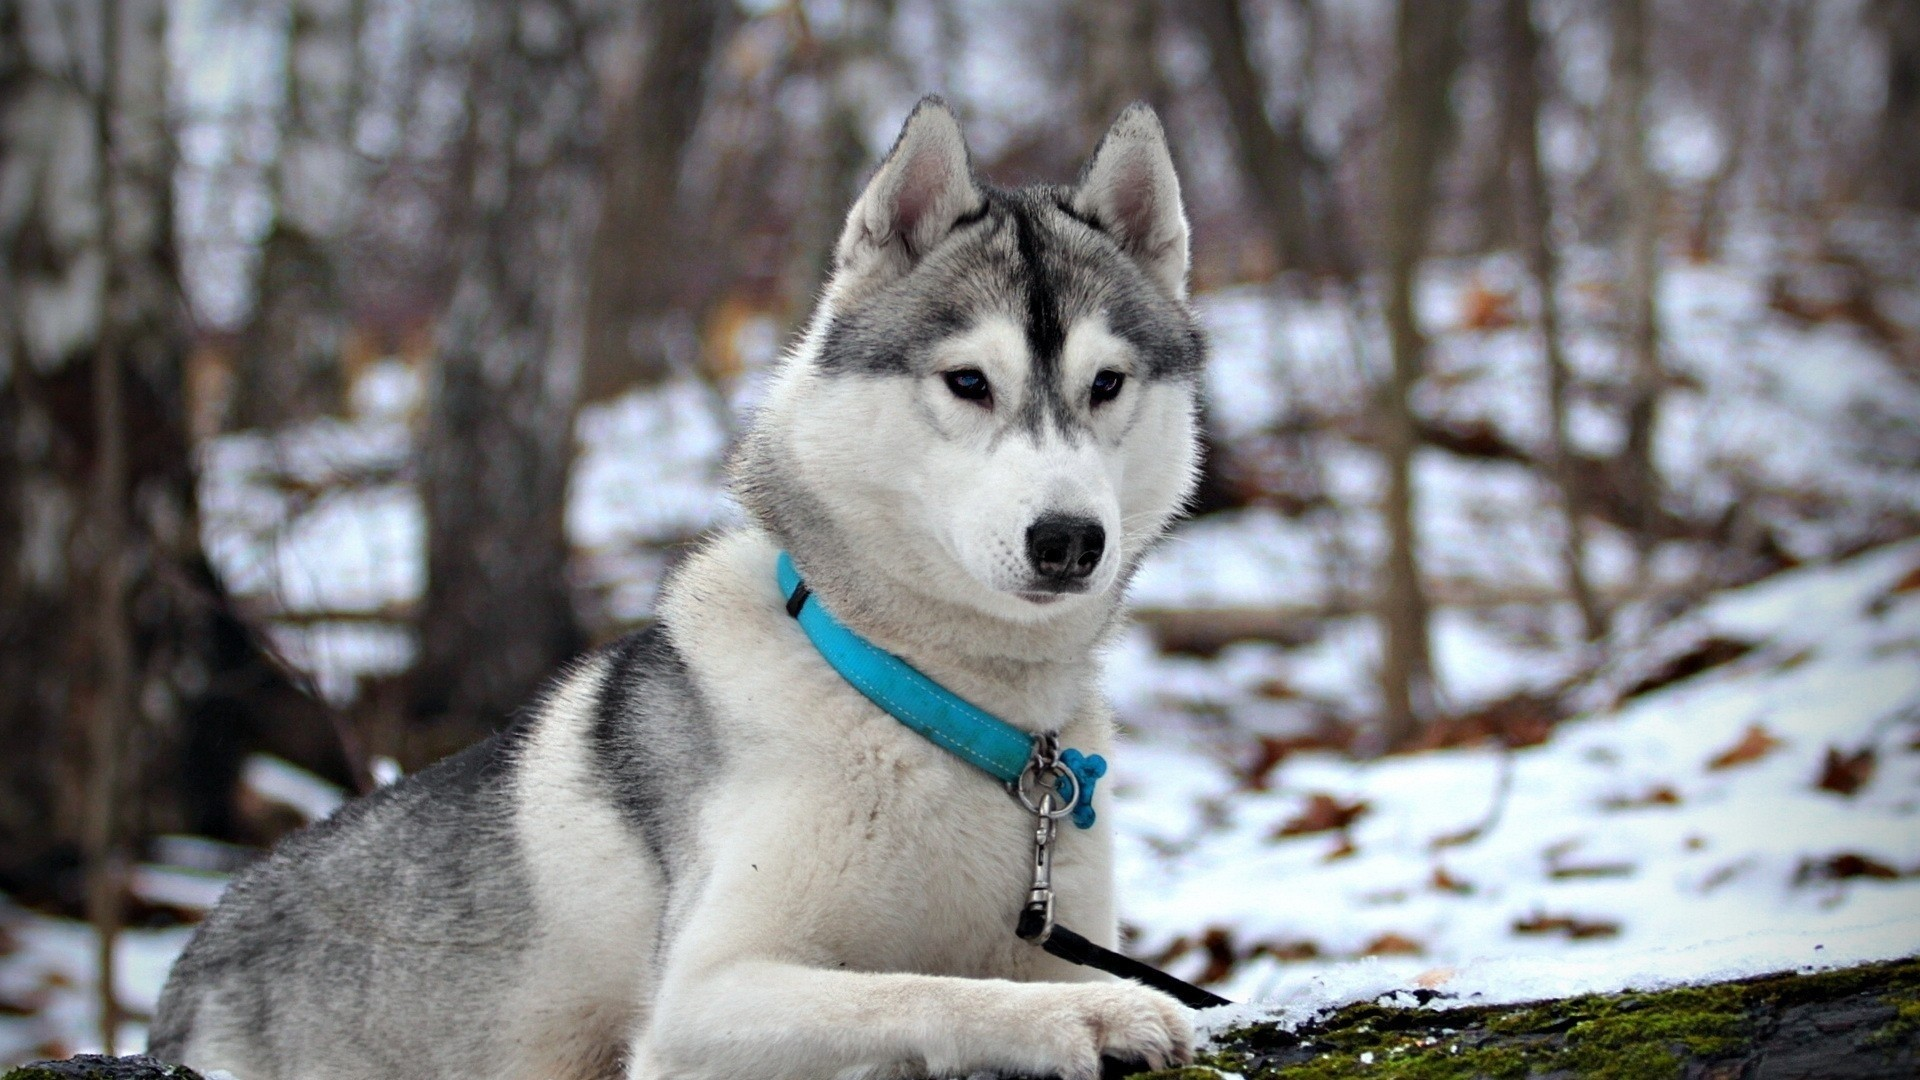 Husky Free Wallpaper and Background